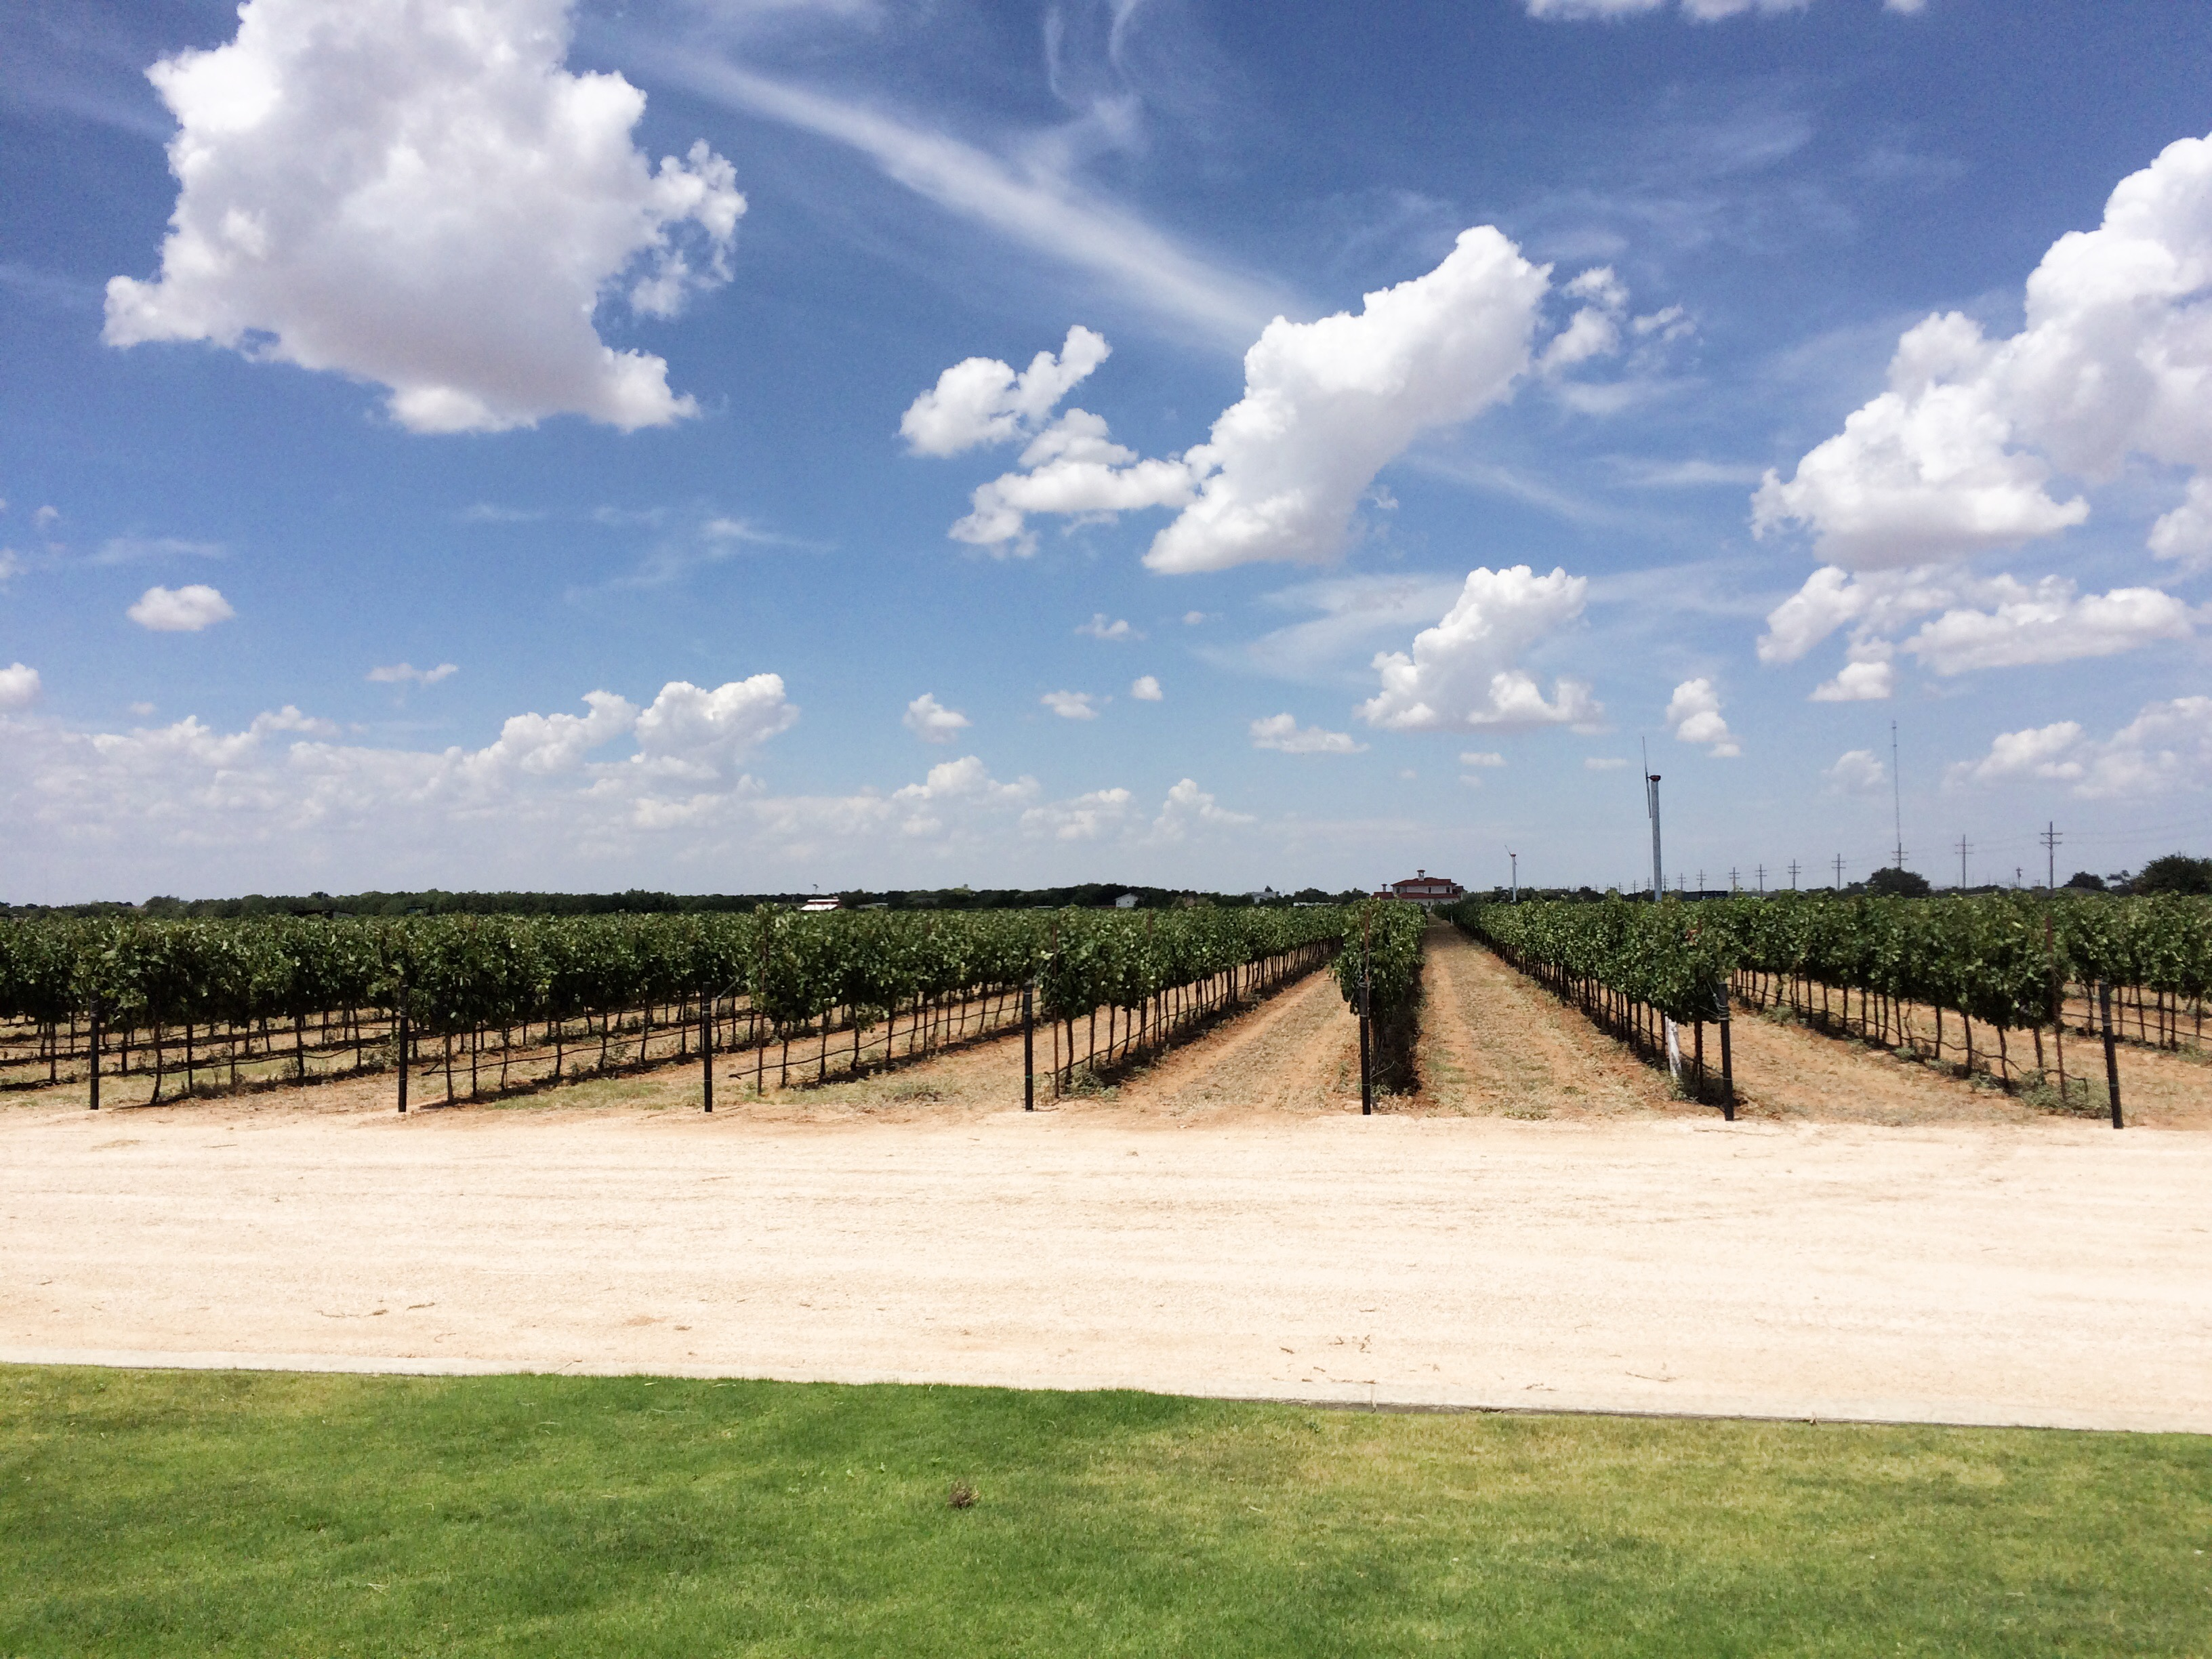 Texas Peanut Tour winery